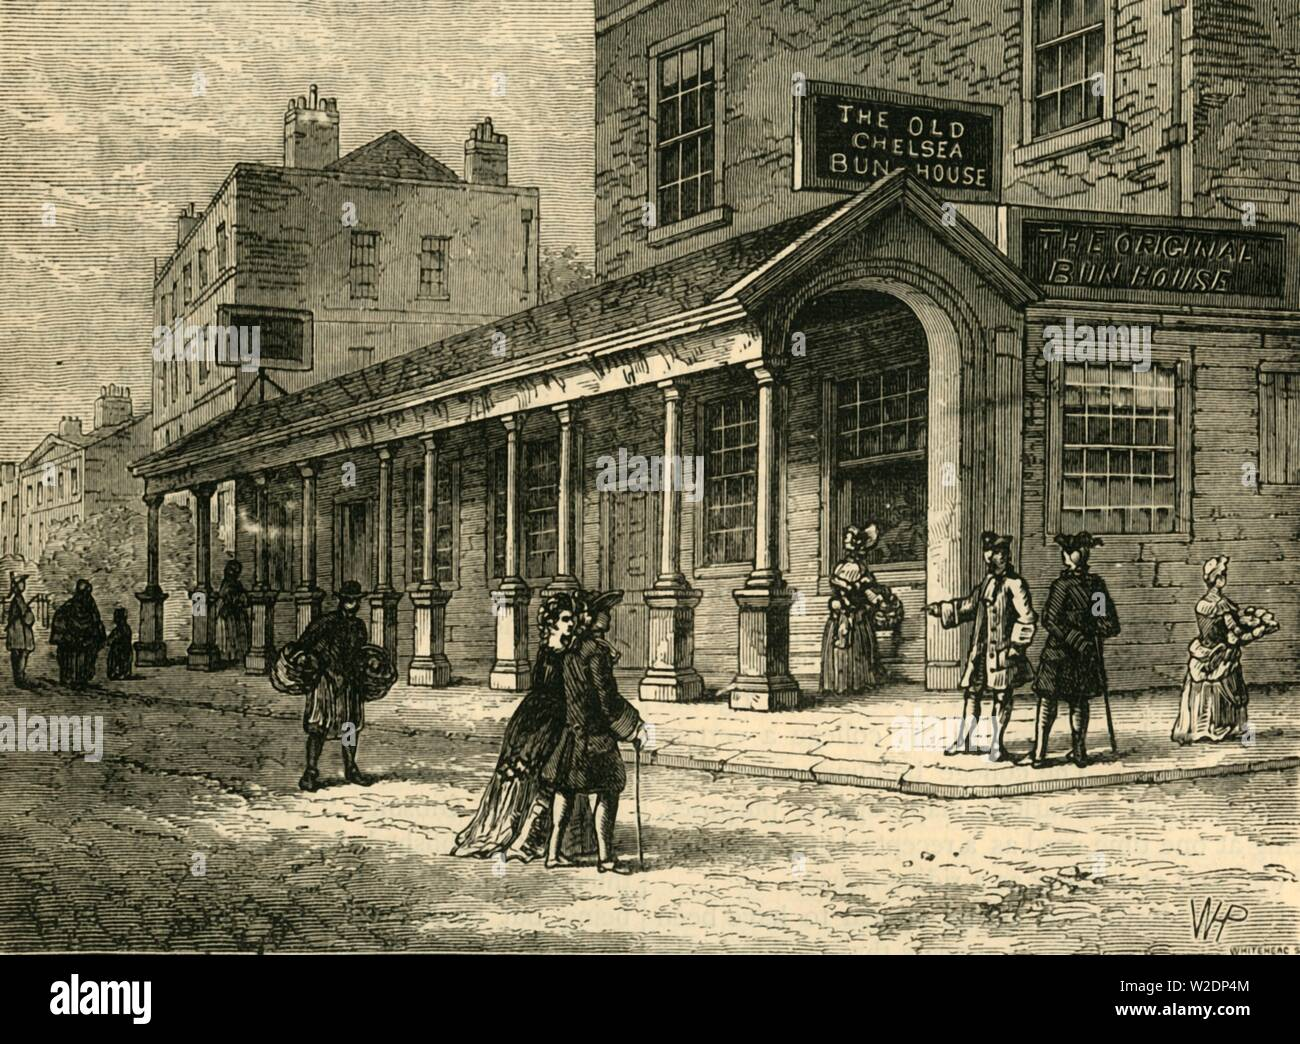 """'The Chelsea Bun-House, 1810', (c1876). The Chelsea Bun House sold Chelsea buns and hot cross buns at Easter, with patronage of Kings George II, George III and their families, the shop was demolished in 1839. From """"Old and New London: A Narrative of Its History, Its People, and Its Places. The Western and Northern Studies"""", by Edward Walford. [Cassell, Petter, Galpin & Co., London, Paris & New York] - Stock Image"""